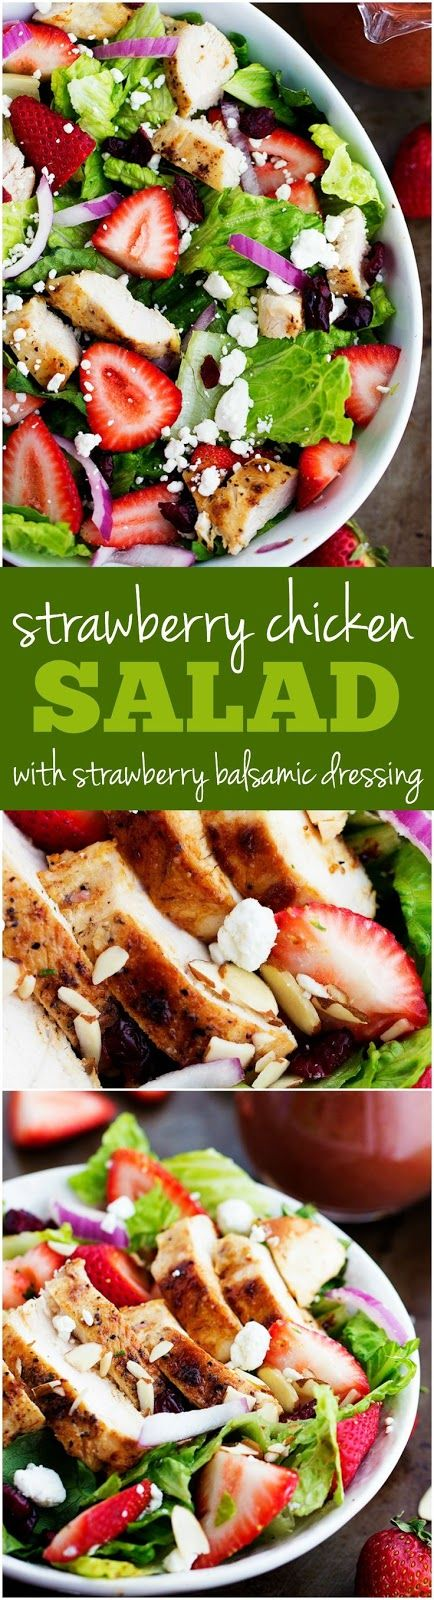 Strawberry Chicken Salad with Strawberry Balsamic Dressing | Pife